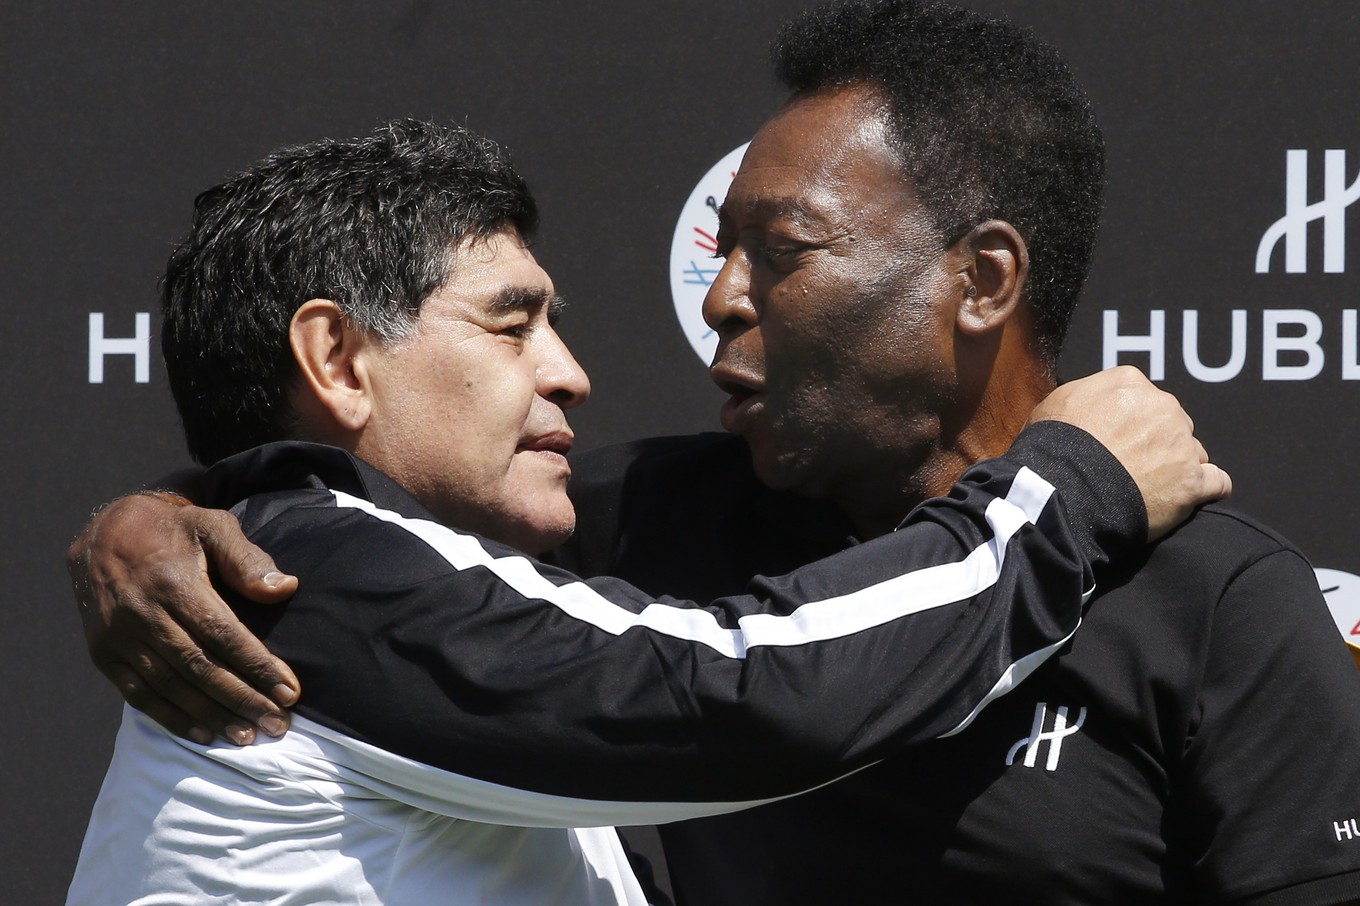 (FILES) In this file photo taken on June 09, 2016 former Argentinian football international Diego Maradona (L) and former Brazilian footballer Pele pose after a football match organised by Swiss luxury watchmaker Hublot at the Jardin du Palais Royal in Paris, on the eve of the Euro 2016 European football championships. - Argentinian football legend Diego Maradona passed away on November 25, 2020. (Photo by PATRICK KOVARIK / AFP)